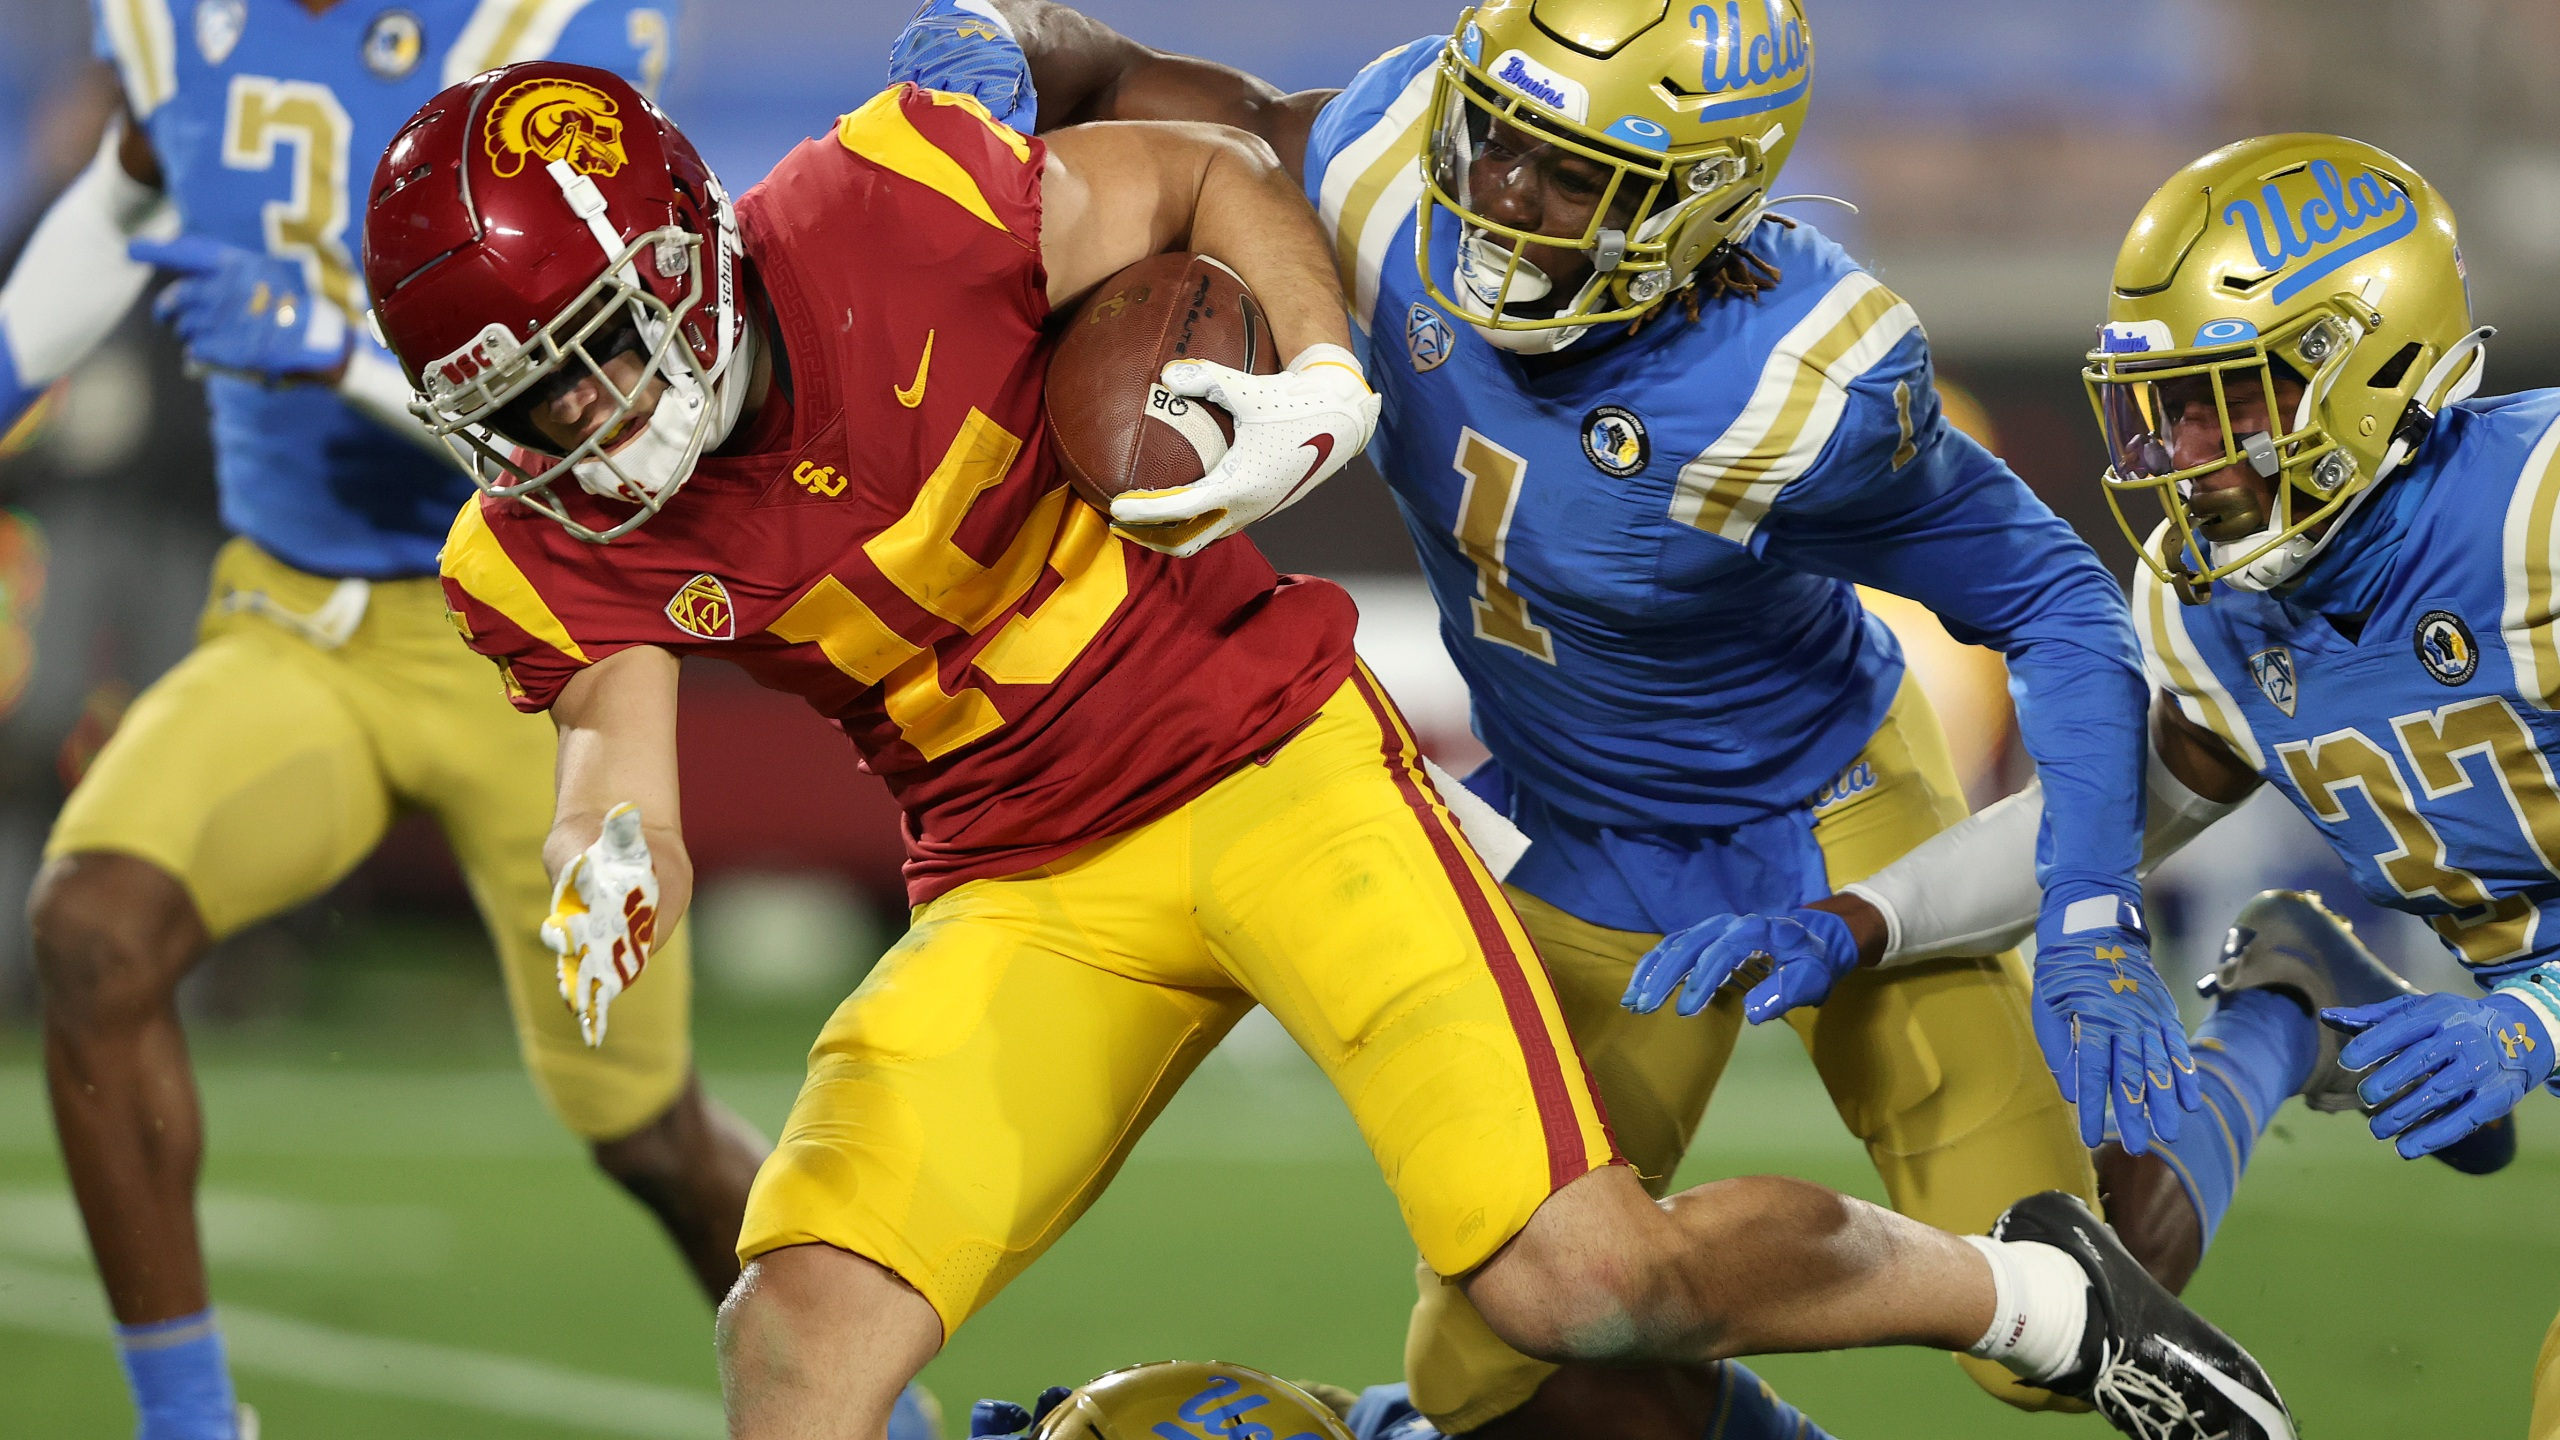 Drake London of the USC Trojans runs past Jay Shaw and Quentin Lake of the UCLA Bruins for a touchdown during the first half of a game at the Rose Bowl on Dec. 12, 2020 in Pasadena, California. (Sean M. Haffey/Getty Images)